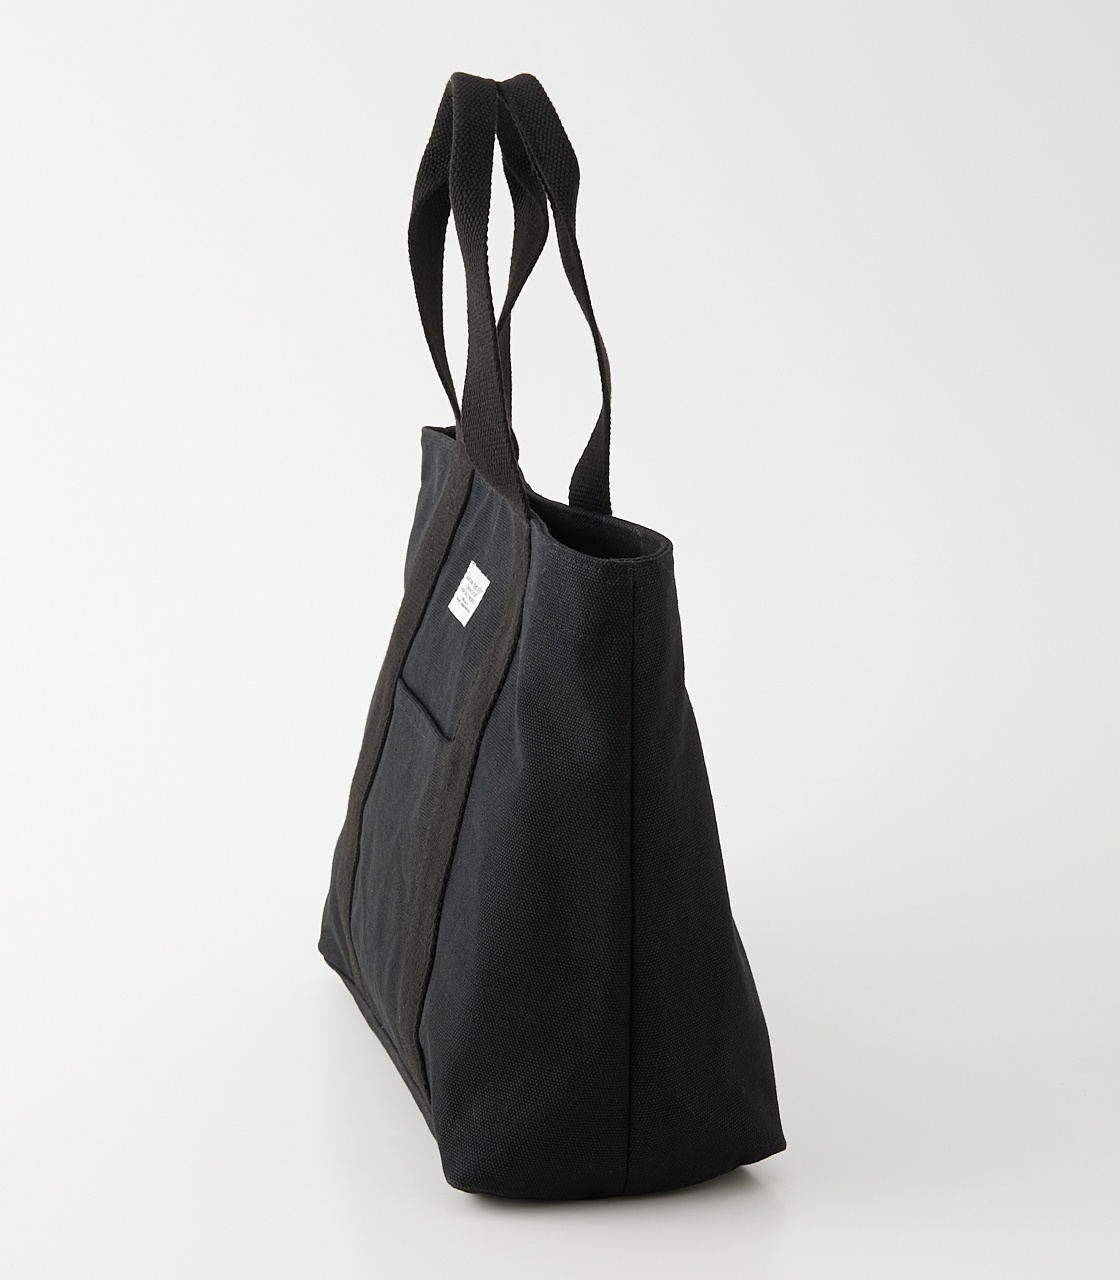 CANVAS TOTE BAG/キャンバストートバッグ 詳細画像 BLK 2